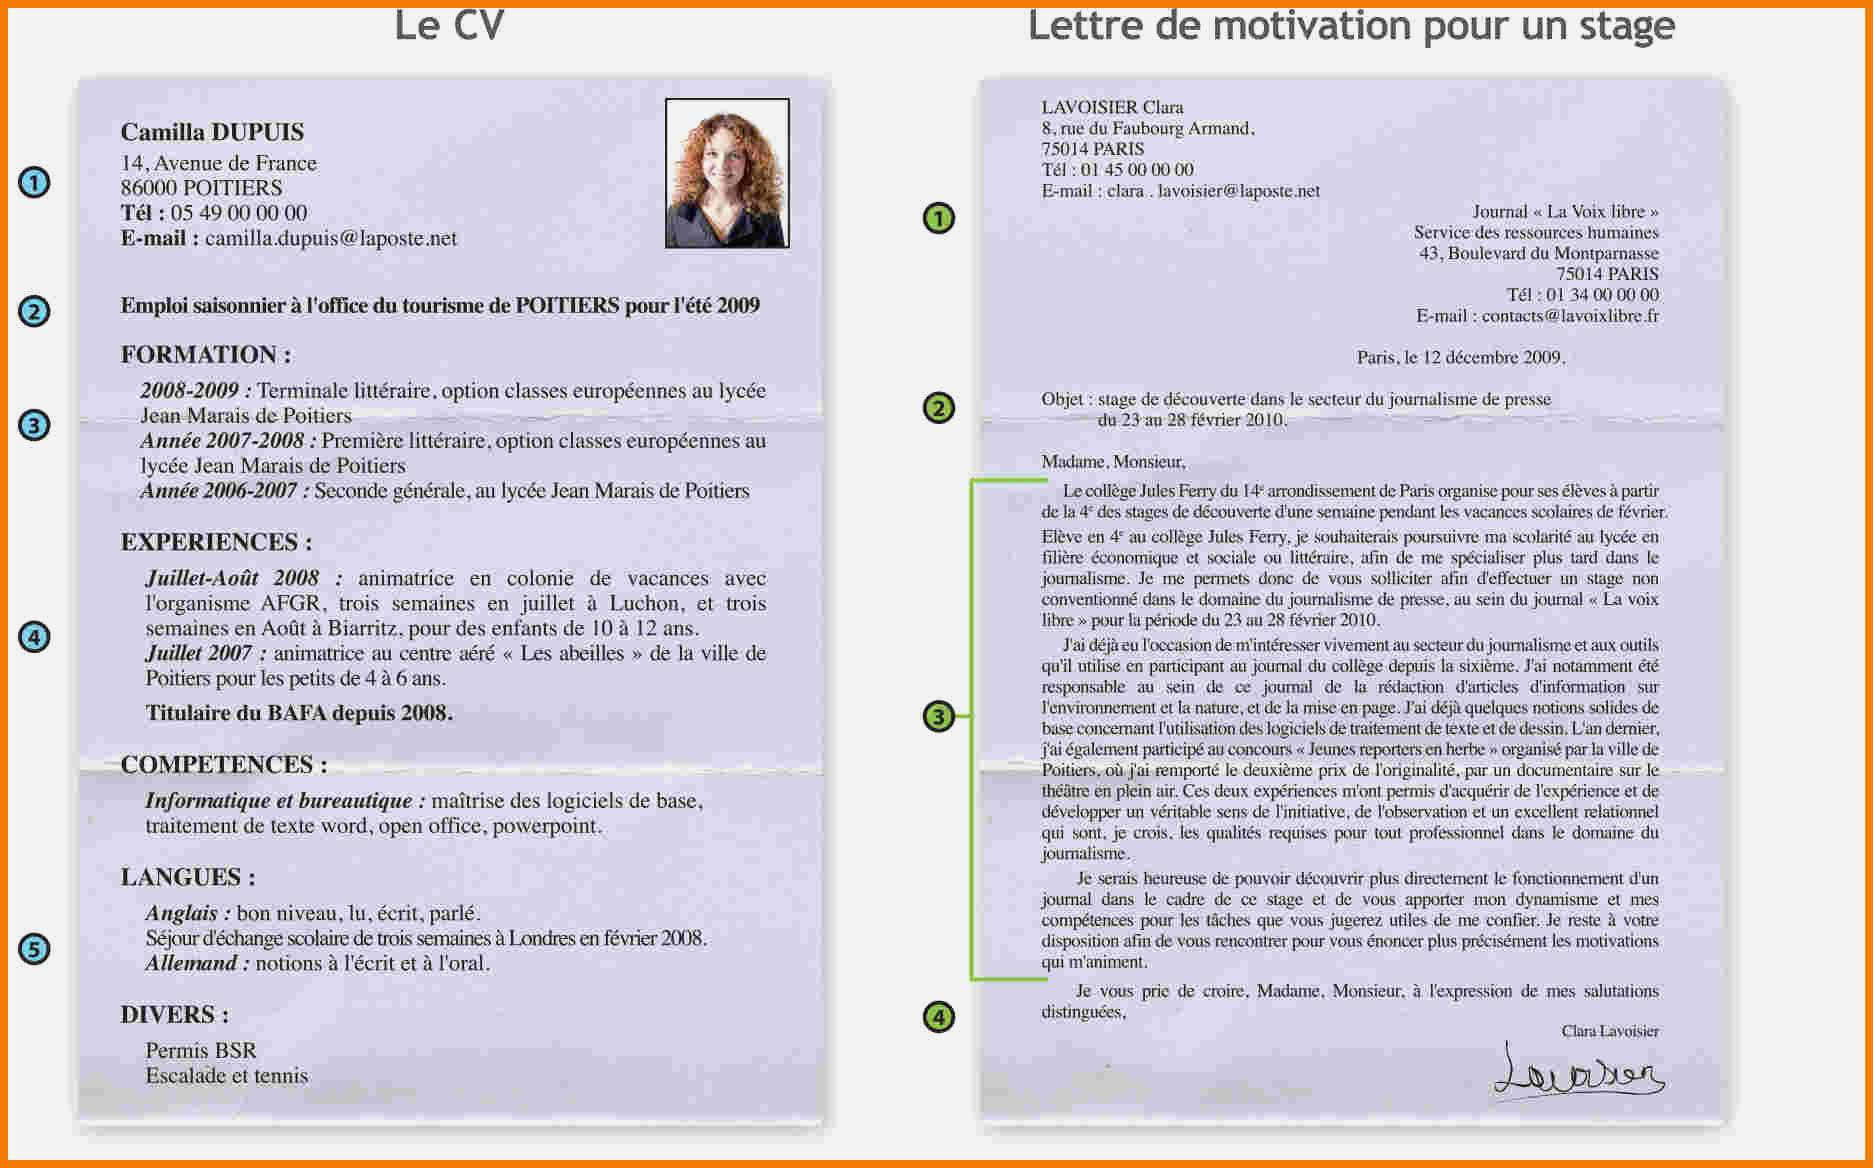 lettre de motivation en anglais pour seconde europ u00e9enne